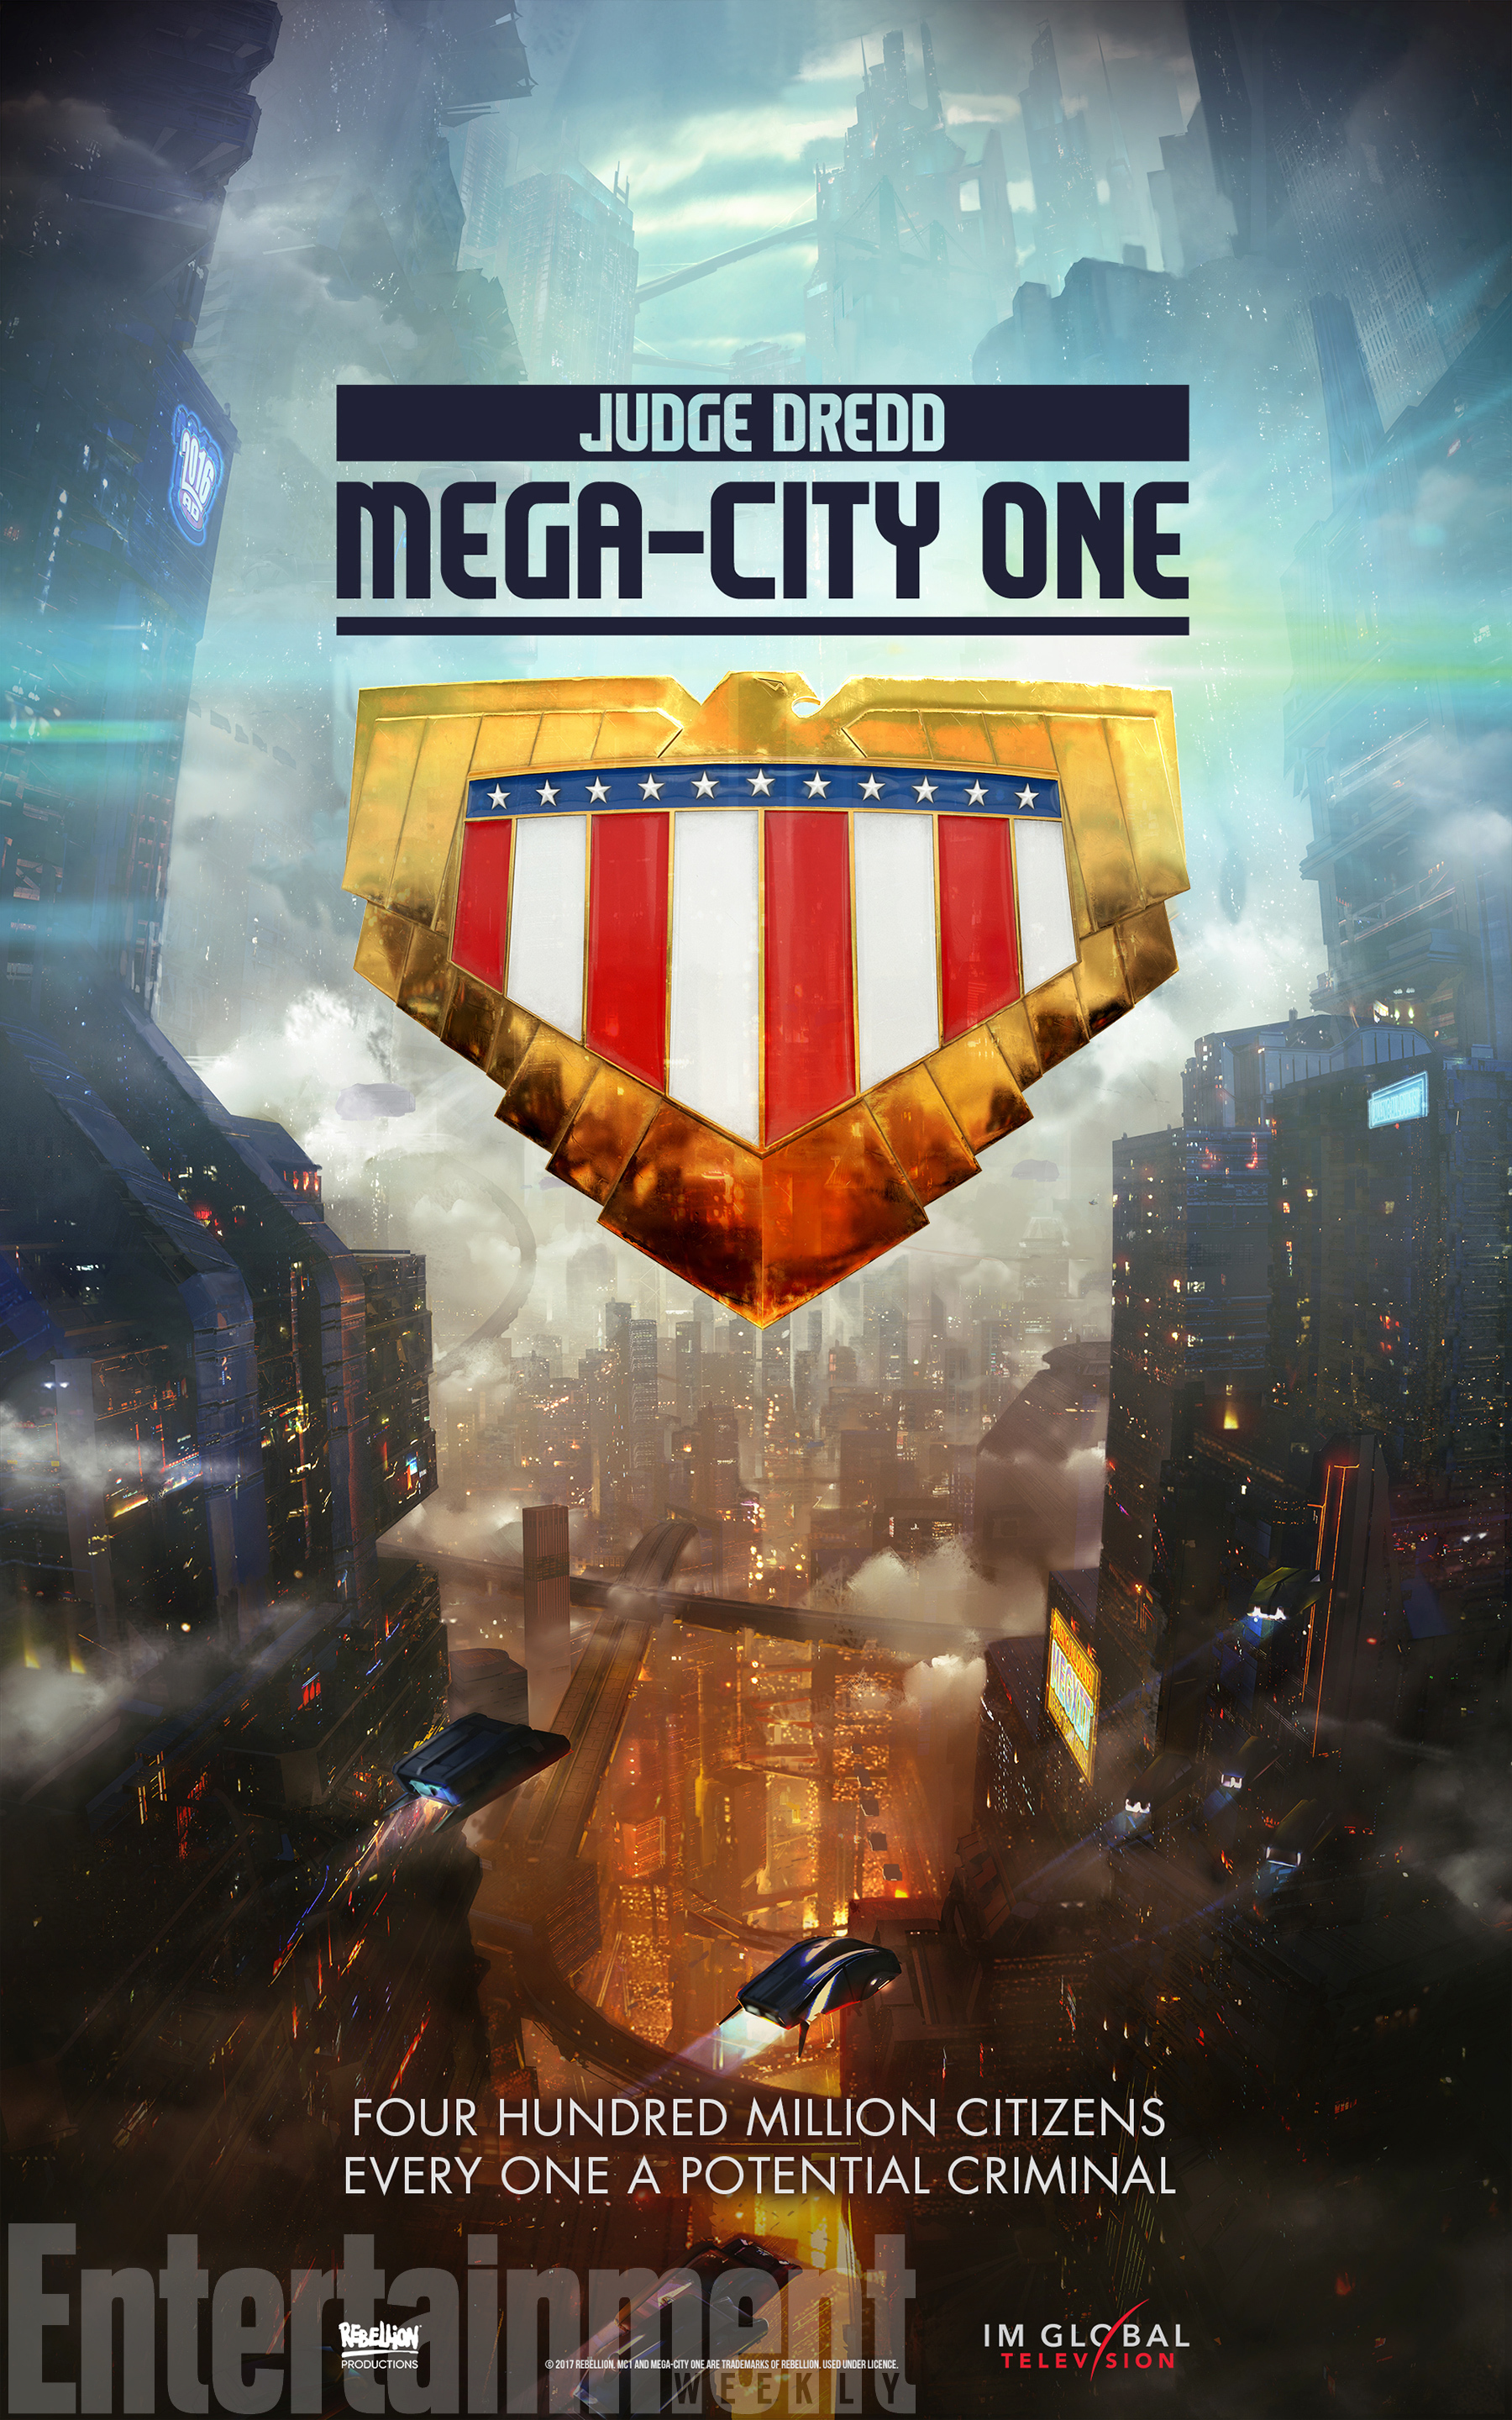 mc1 poster Judge Dredd will now uphold the law in new TV series